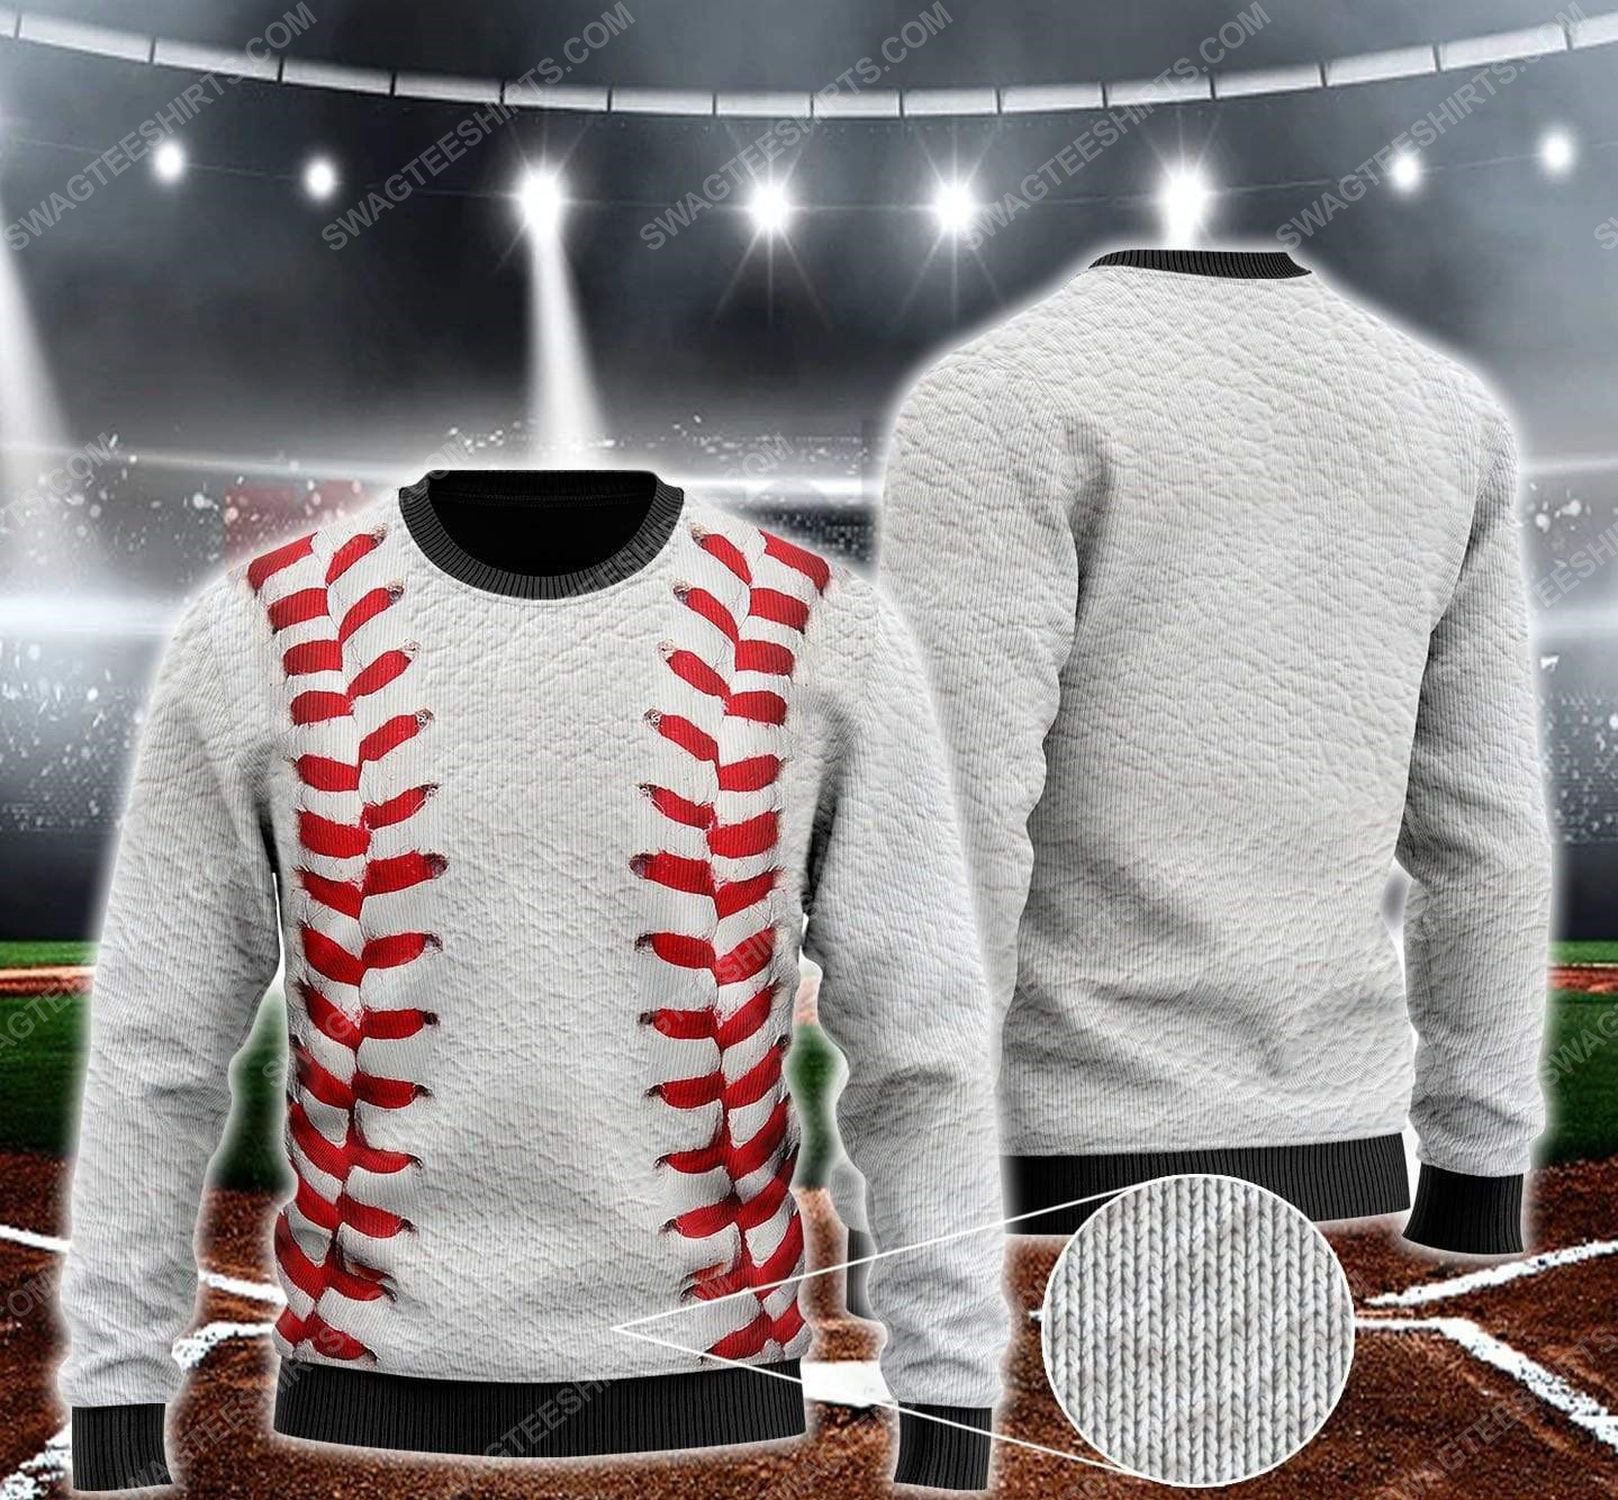 Baseball pattern all over print ugly christmas sweater 1 - Copy - Copy